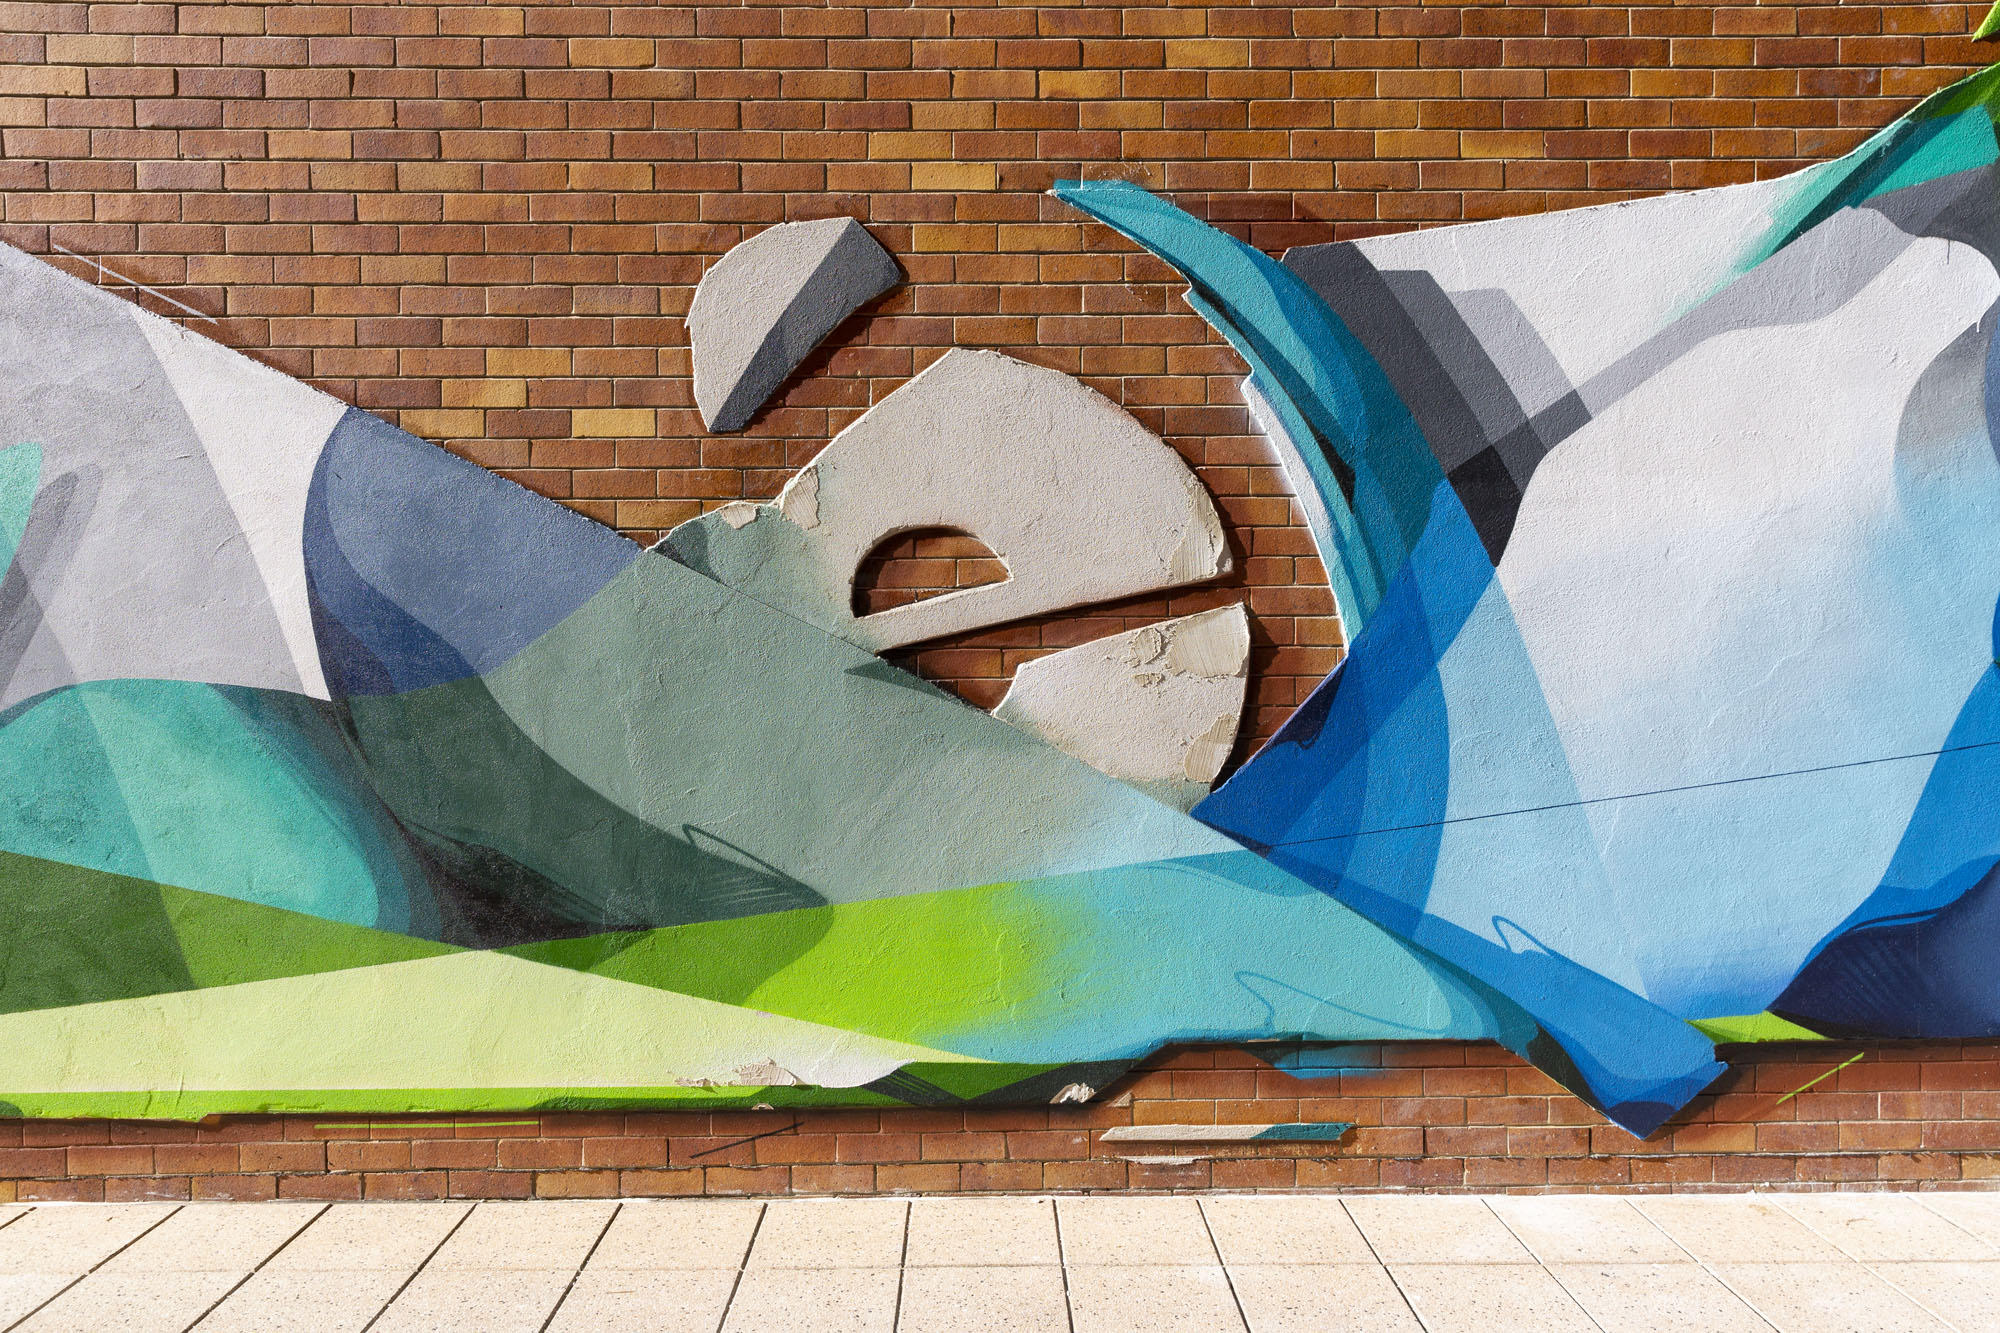 A work by Does - 201905-DOES-QUT-Brisbane_LukeShirlaw_IMG_0687